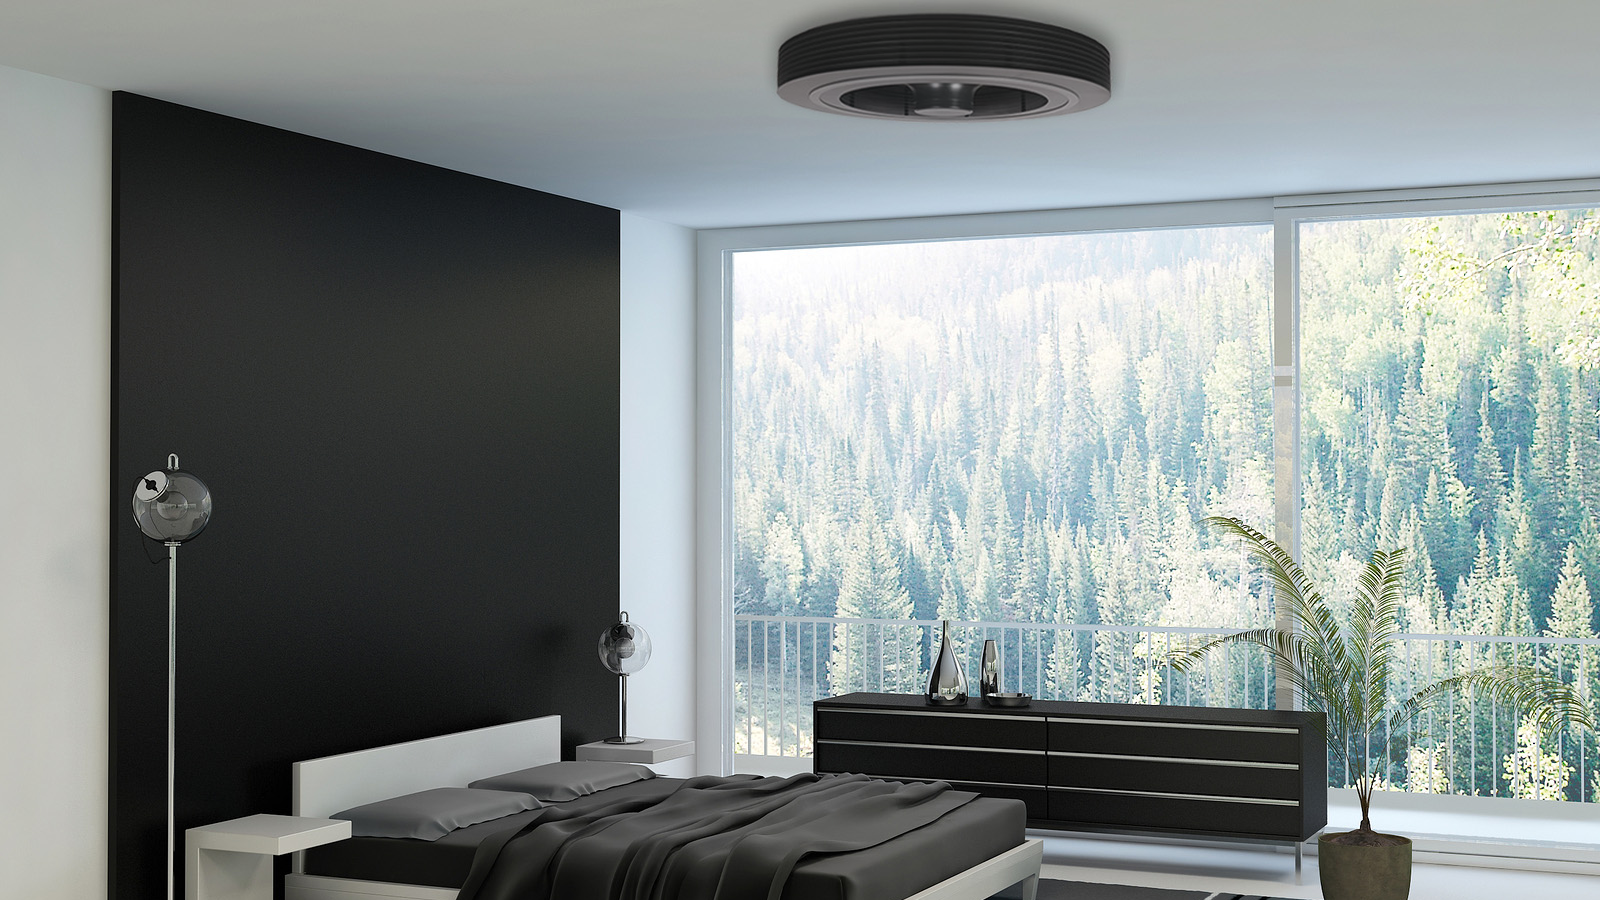 Exhale Fans The Ceiling Fan Reinvented Bedroom Wall Colors